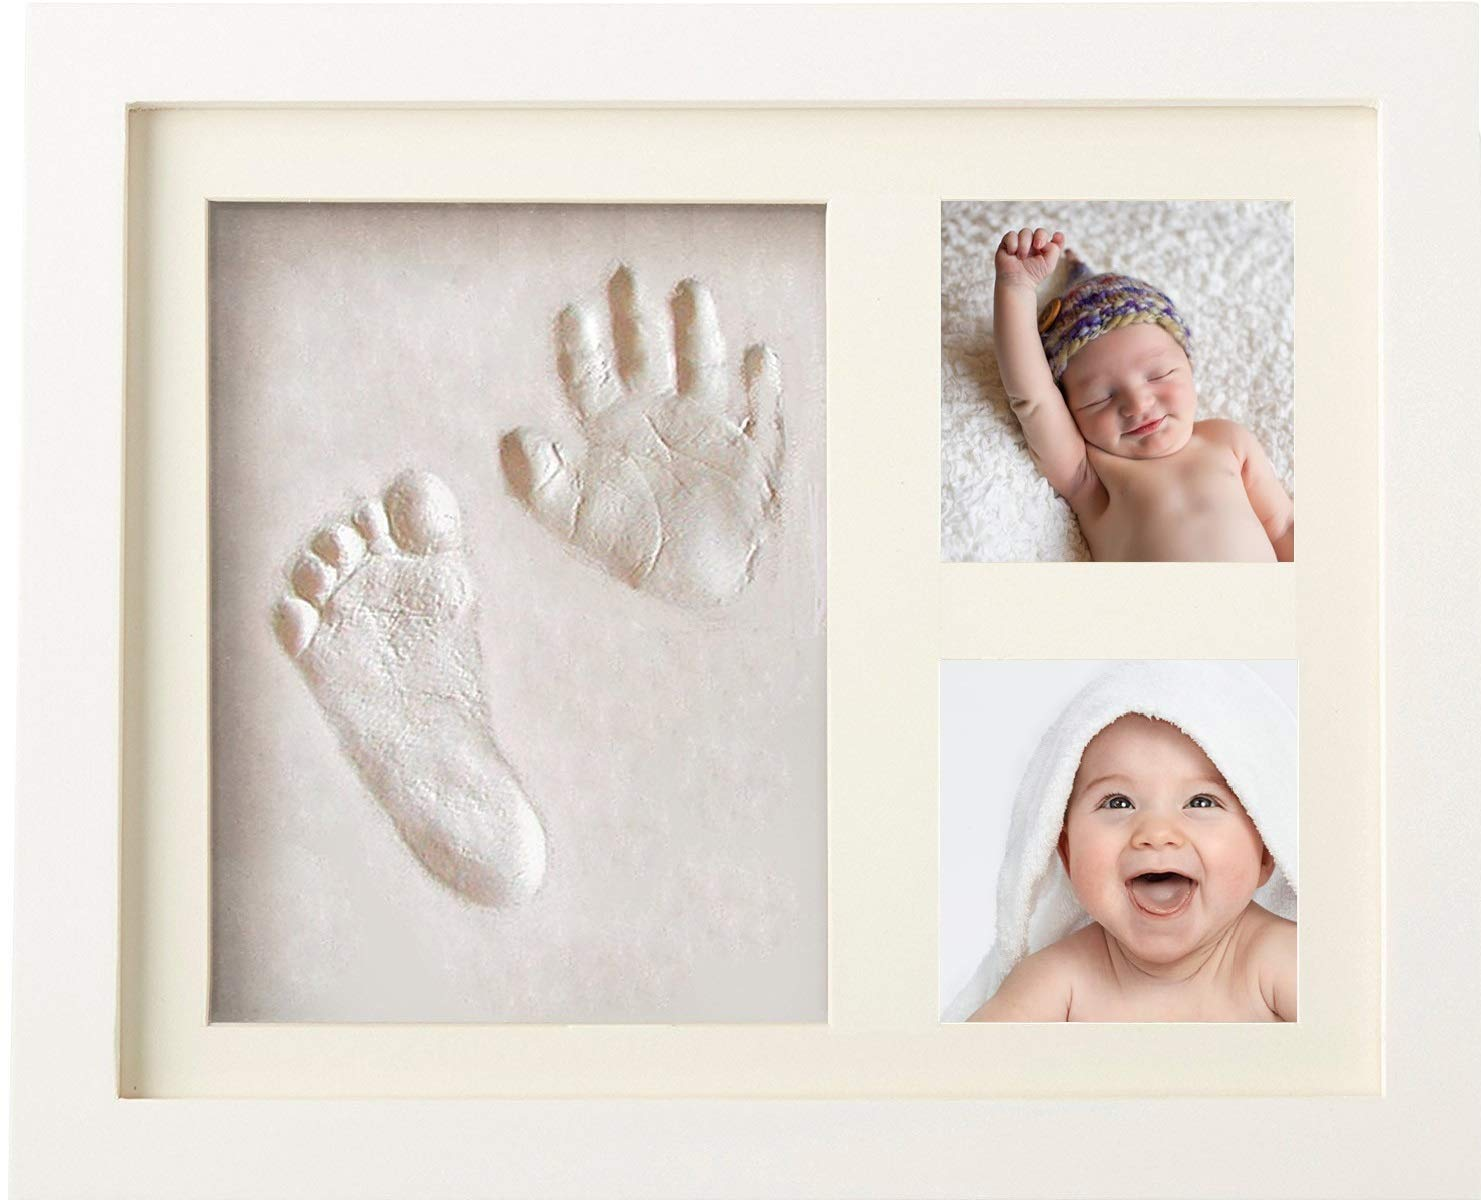 Premium Baby Handprint and Footprint Kit (NO Mold) | Unique Baby Shower & New Mom Gift with Box | Baby Registry Must Have for Newborn Boy & Girl | DIY Photo Frame Keepsake | Nursery Room Decor